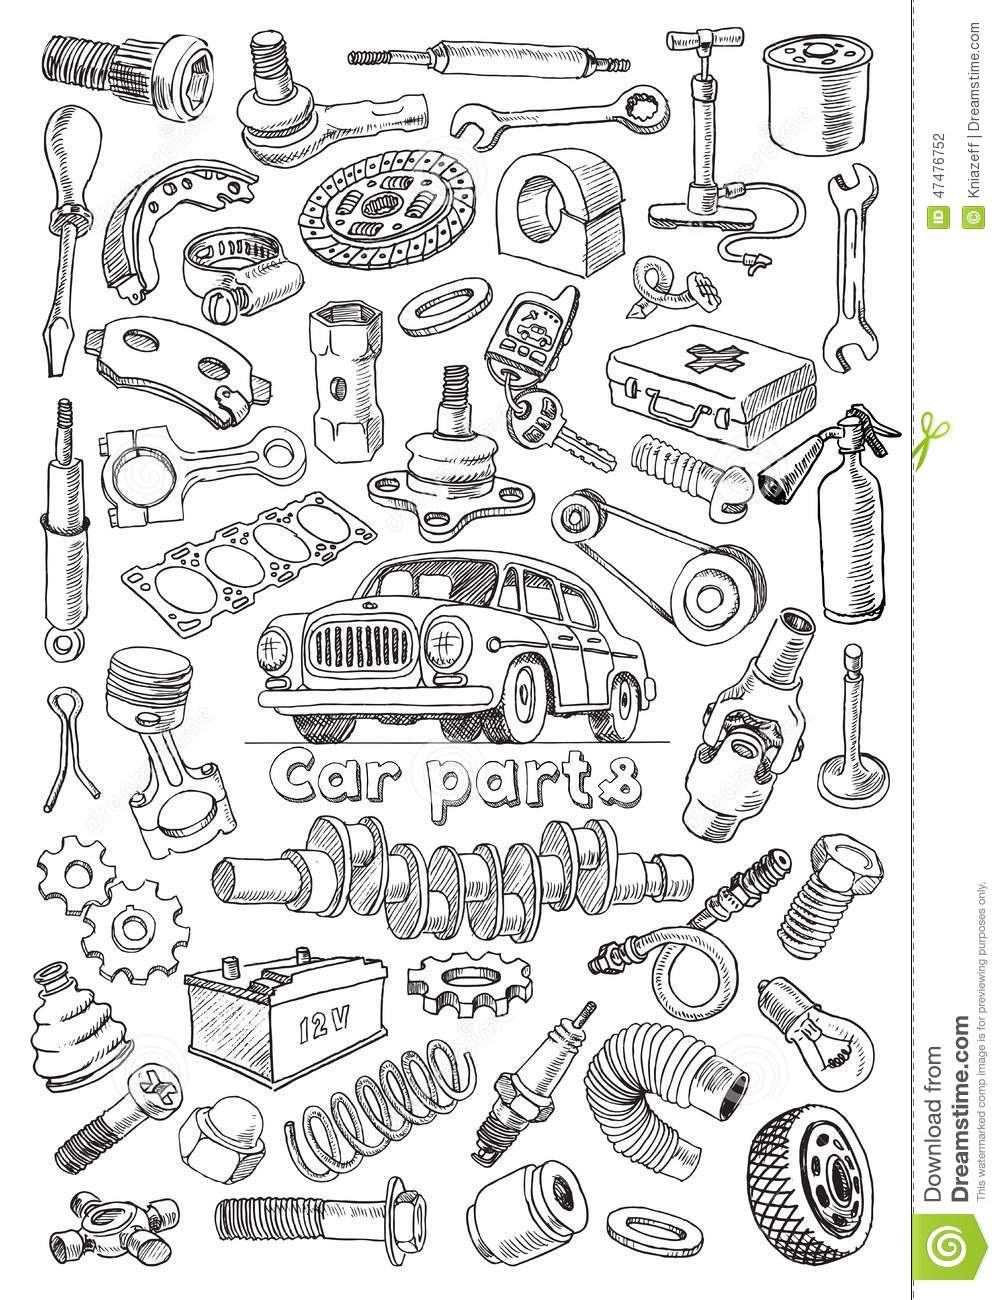 Stock Illustration Car Parts Freehand Drawing Style Image Vintage Automobile Center Illustration Set Vector Image47476752 on ford car clip art